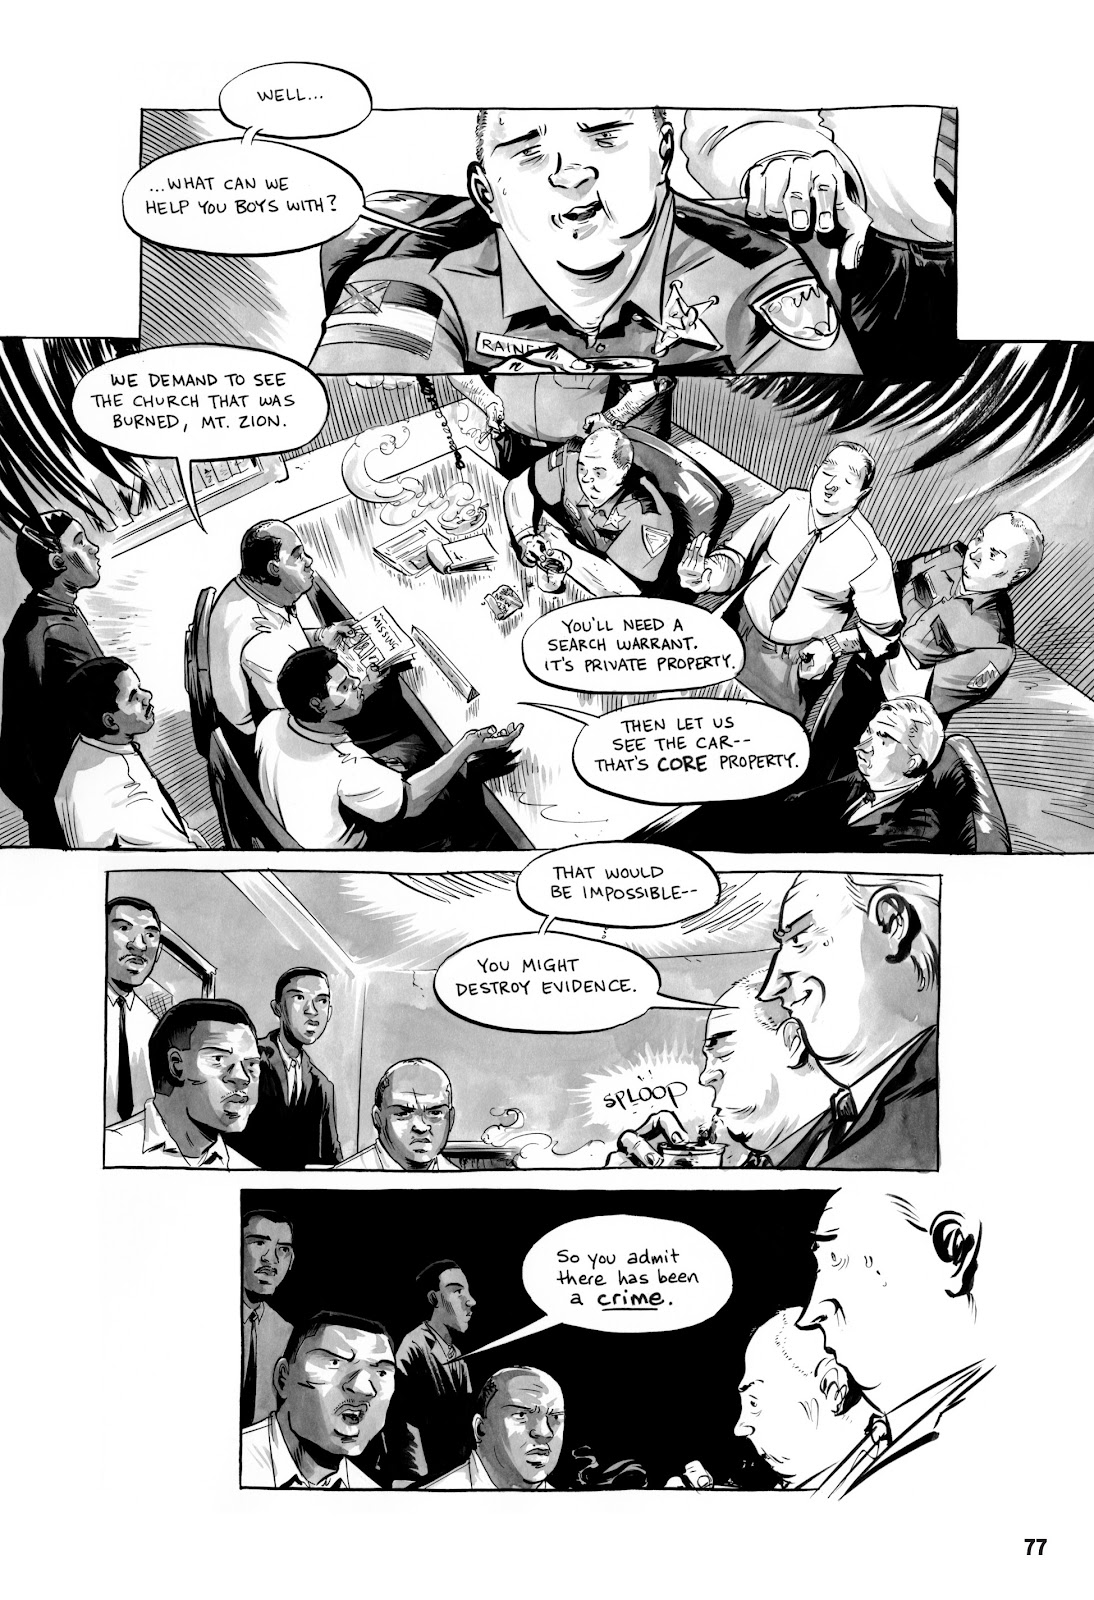 March 3 Page 74